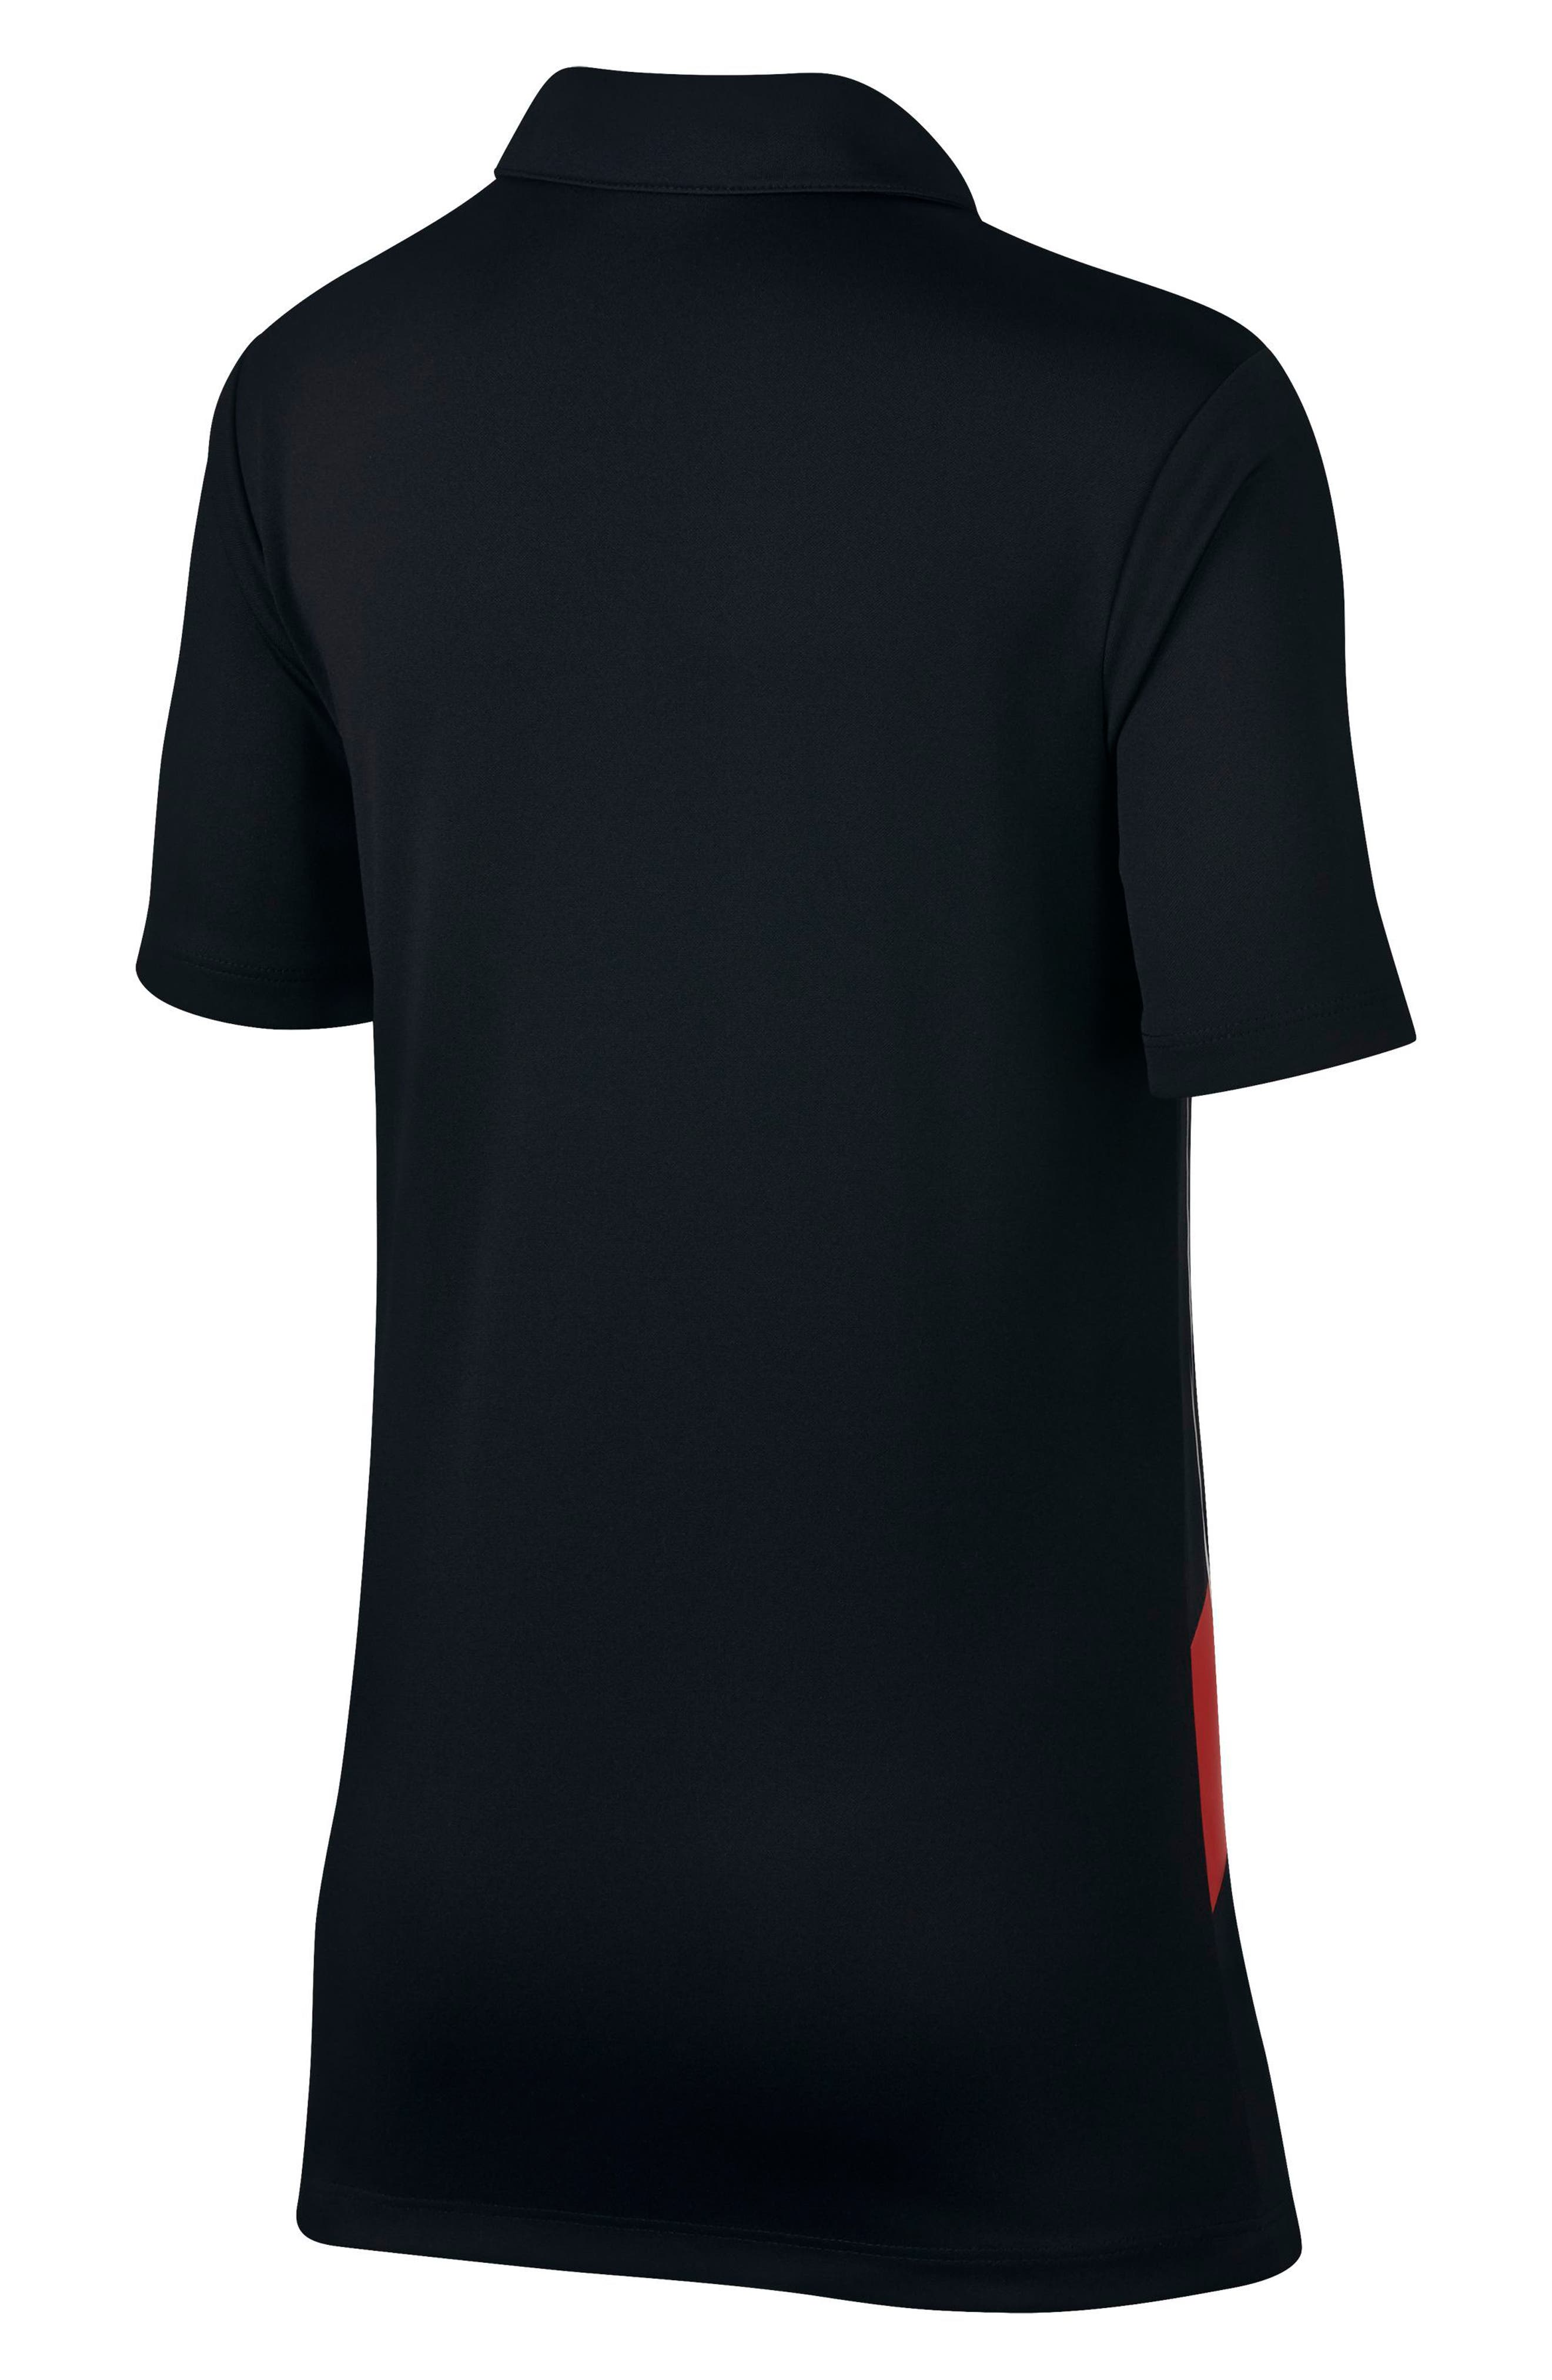 Dry Victory Graphic Polo,                         Main,                         color, 010